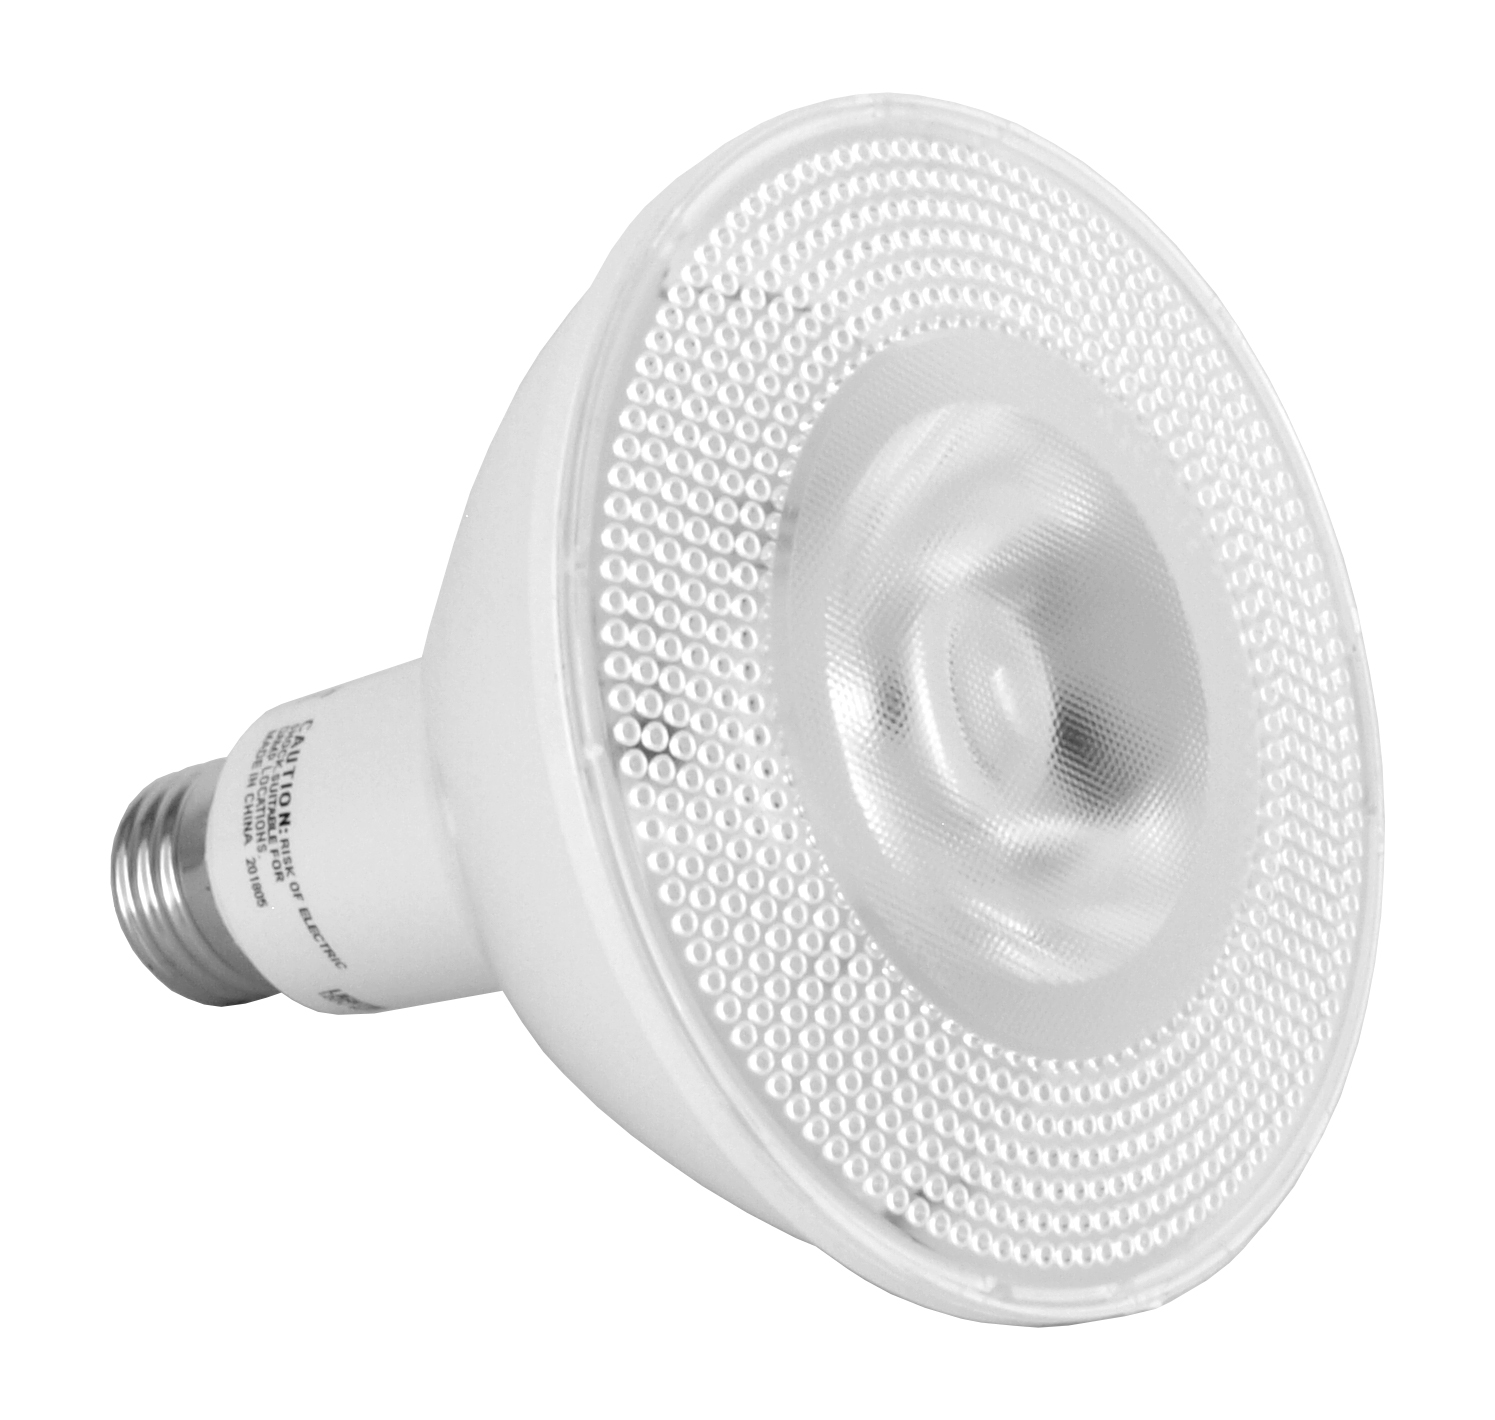 PAR38 LED Flood Light Bulb - 950 Lumens - 3000k